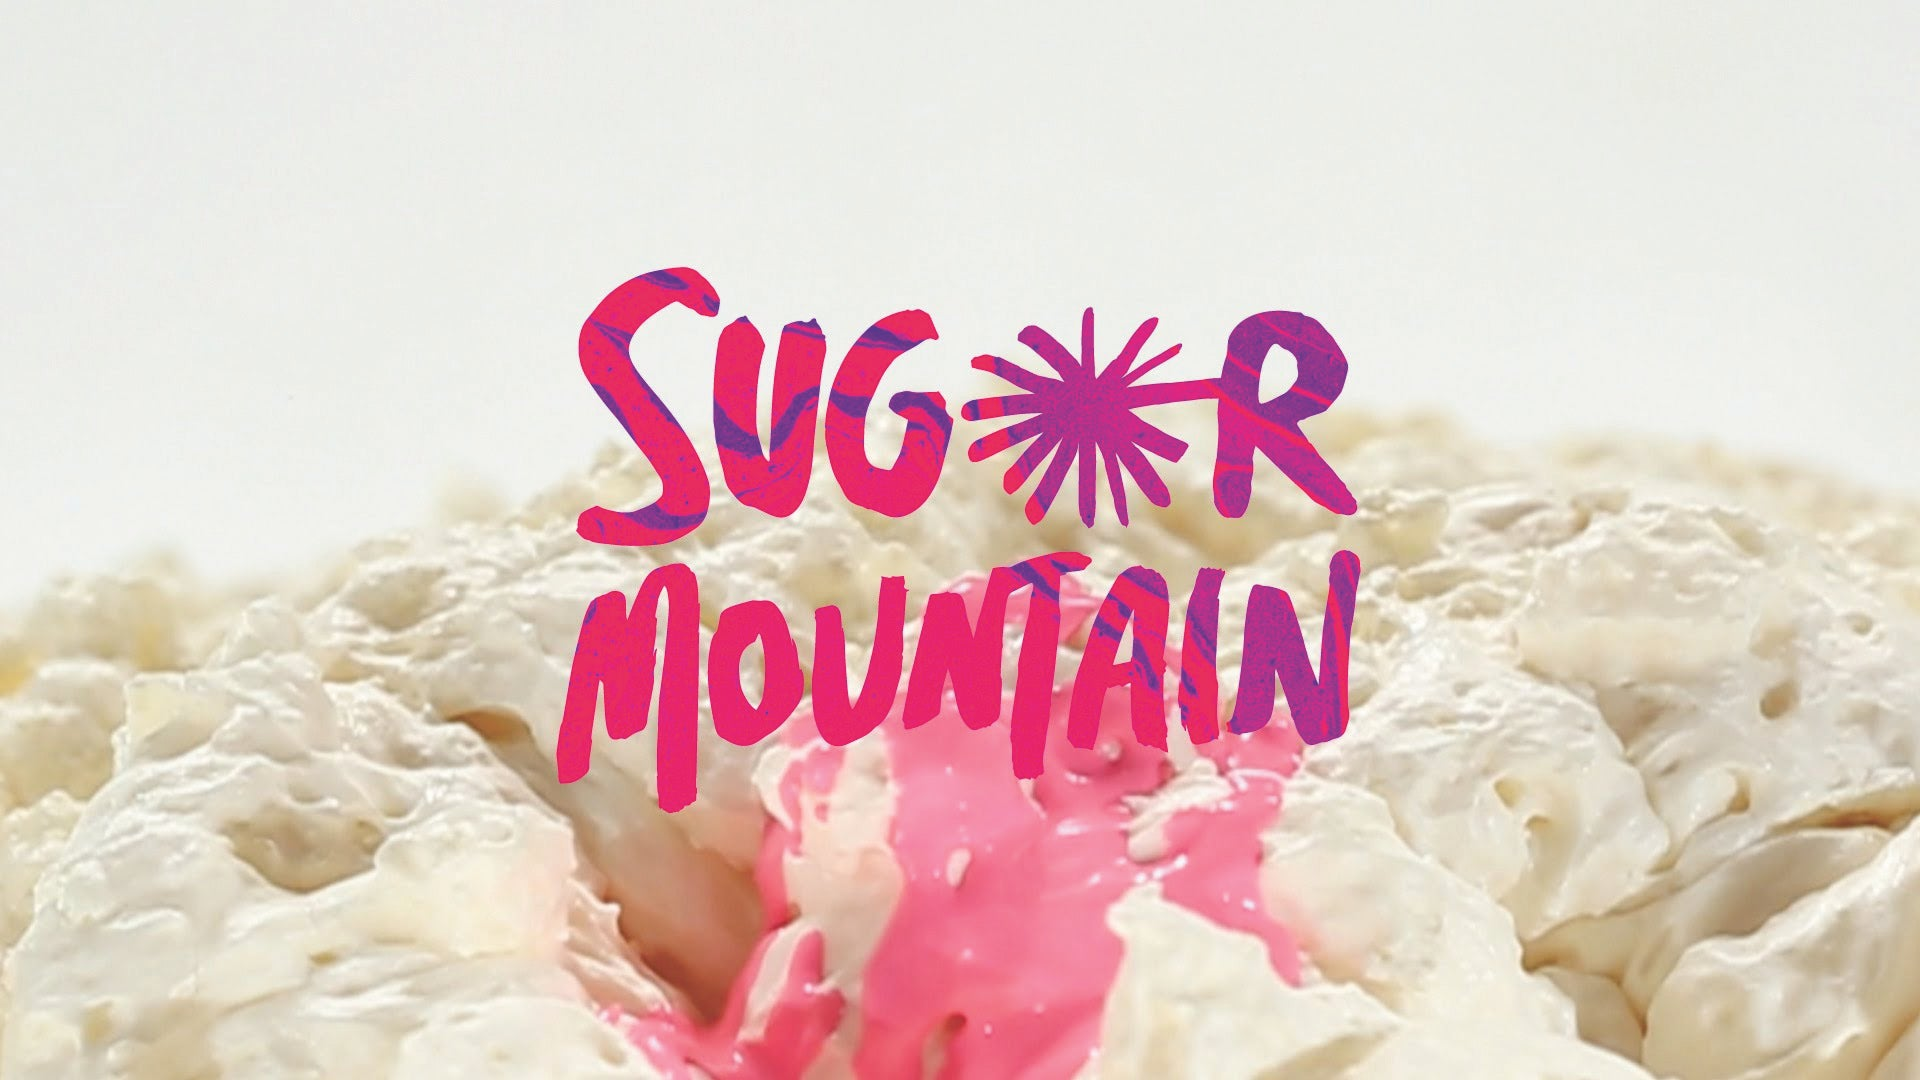 6 Reasons Every Melburnian Should Attend Sugar Mountain